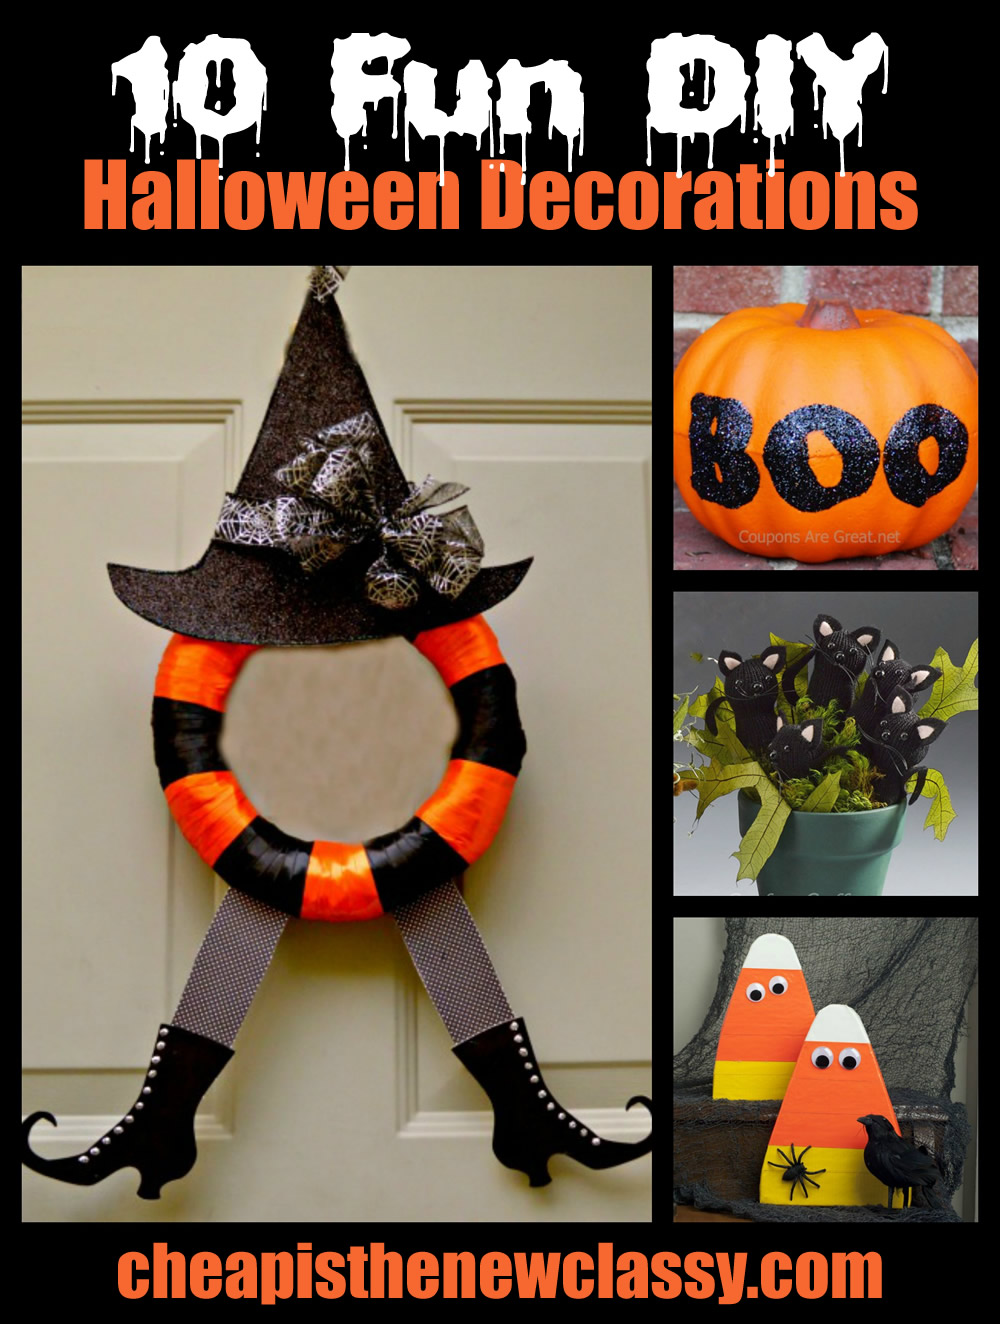 10 Fun and Spooky DIY Halloween Decorations | Cheap Is The New Classy